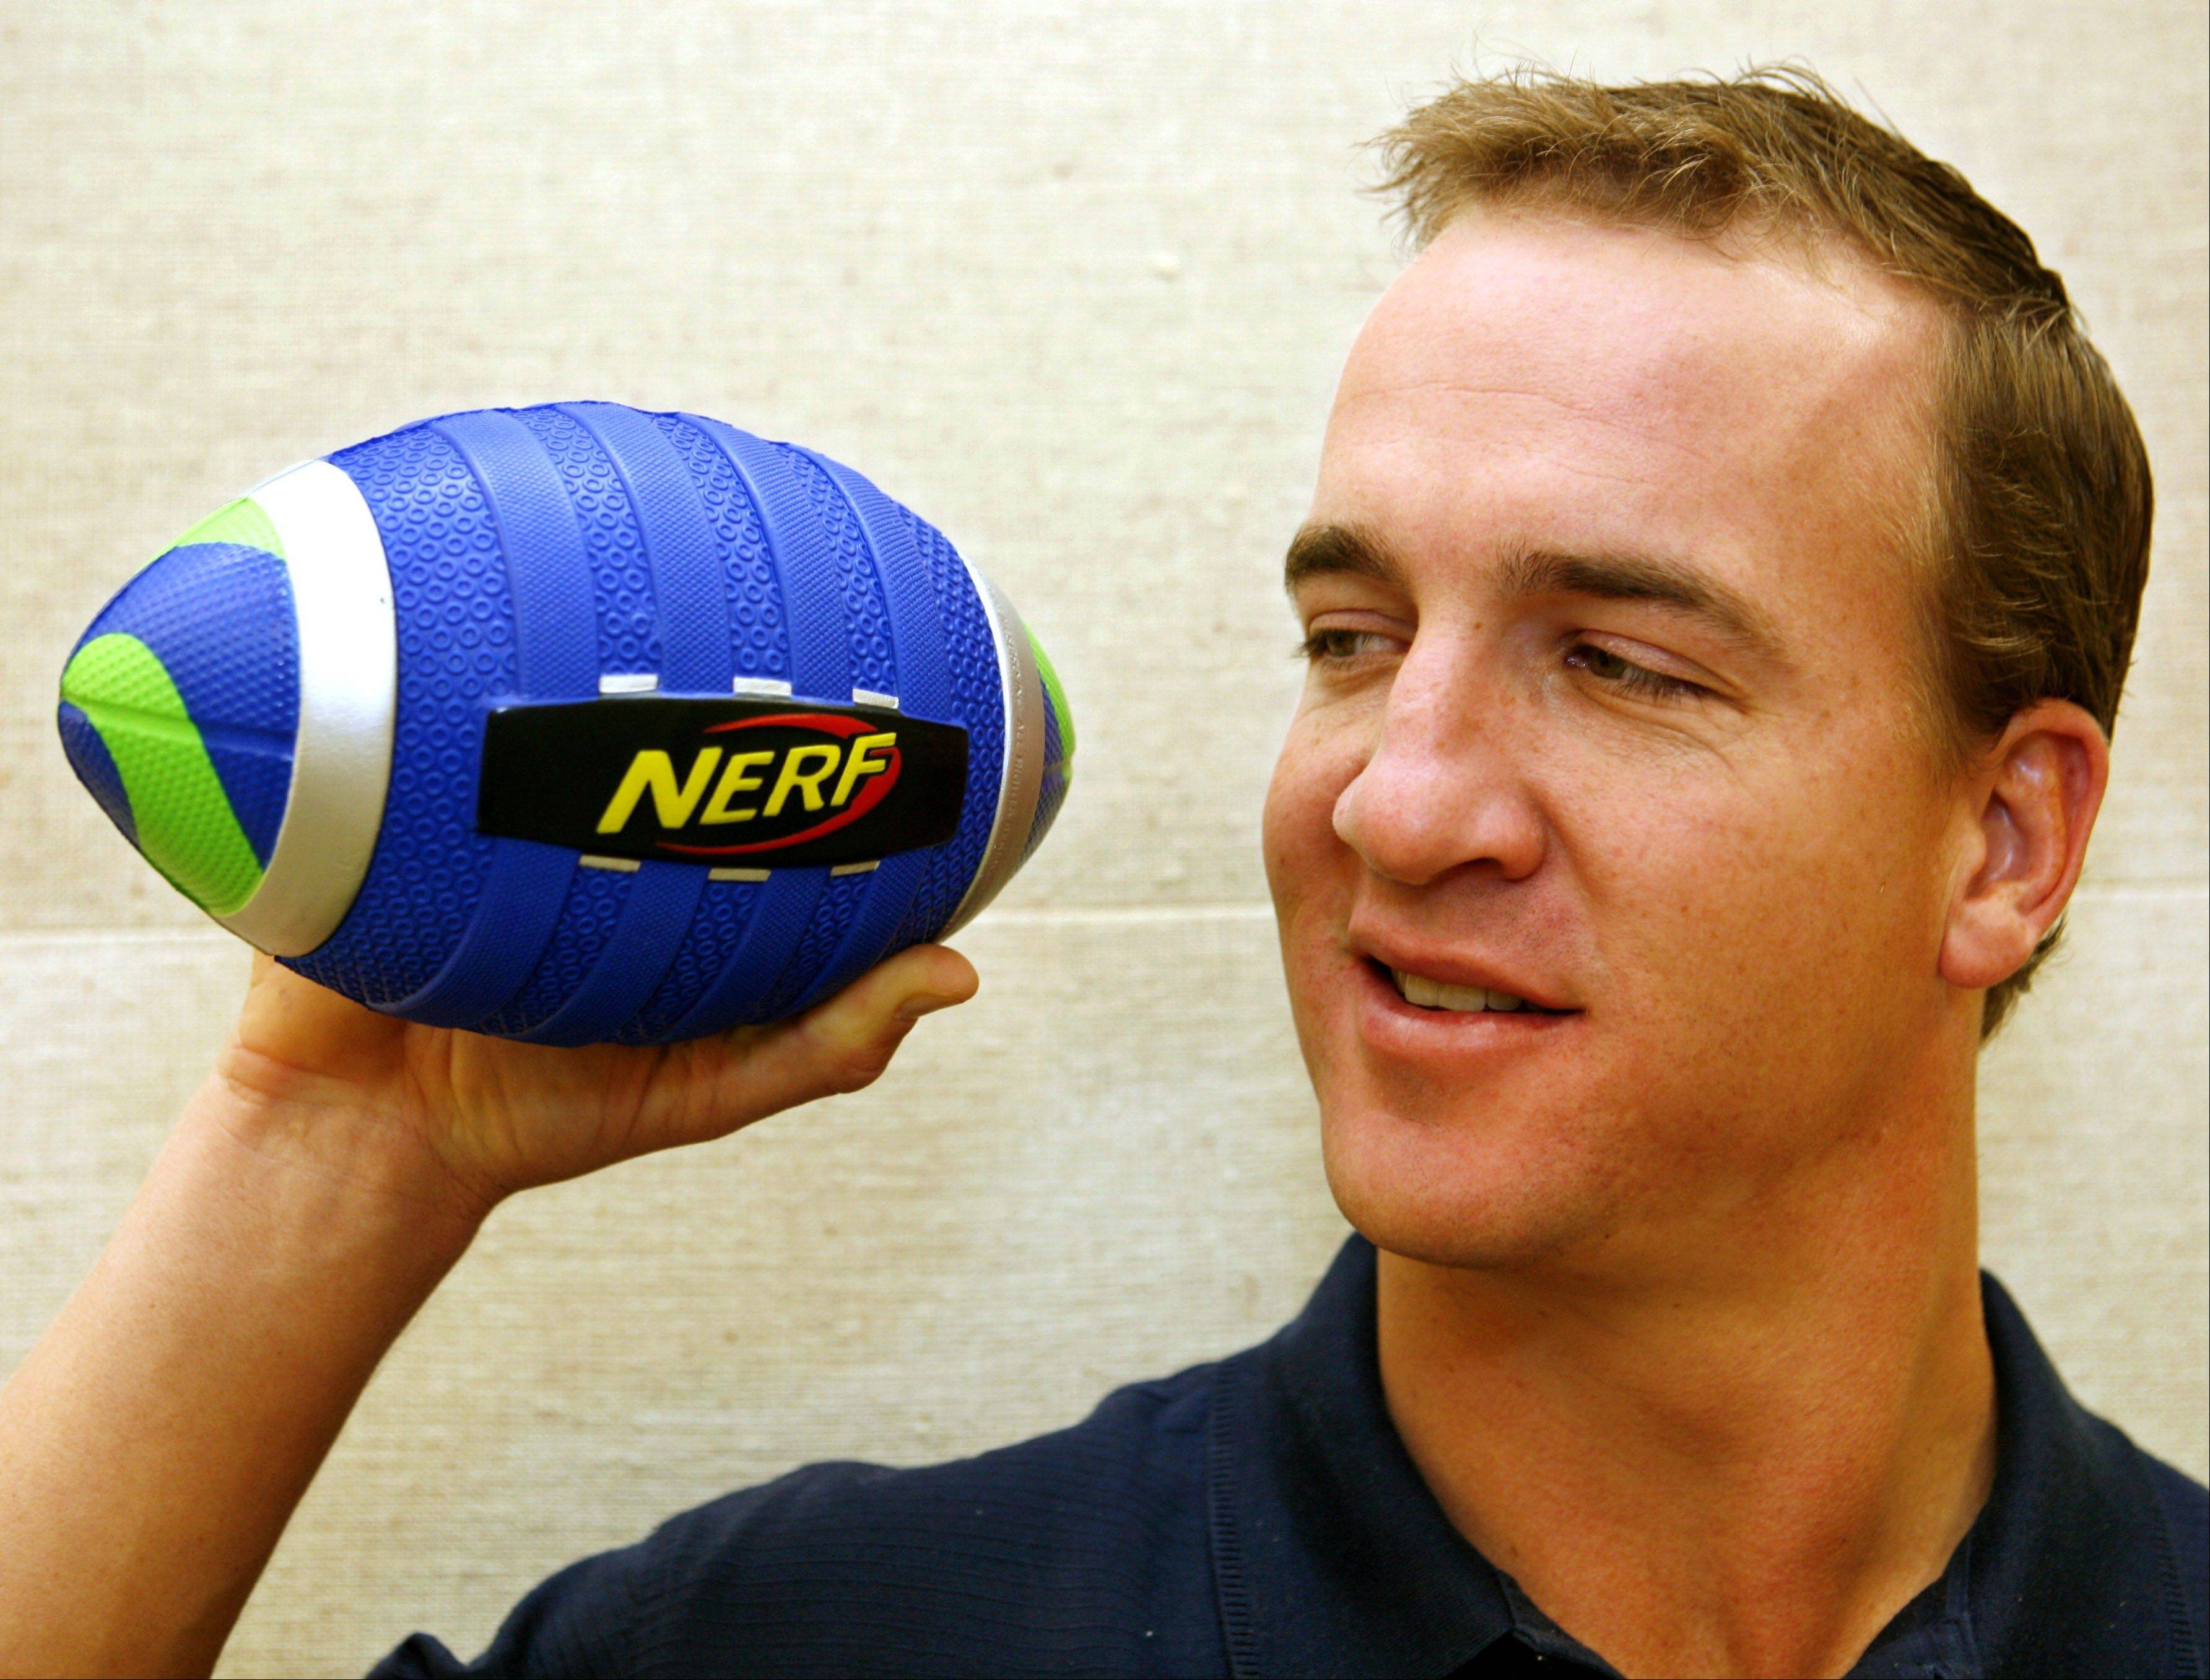 Did star NFL quarterback Peyton Manning toss a Nerf football as he grew up? He�s seen here with a model named after him. Nerf toys may are among the 12 finalists for the National Toy Hall of Fame.